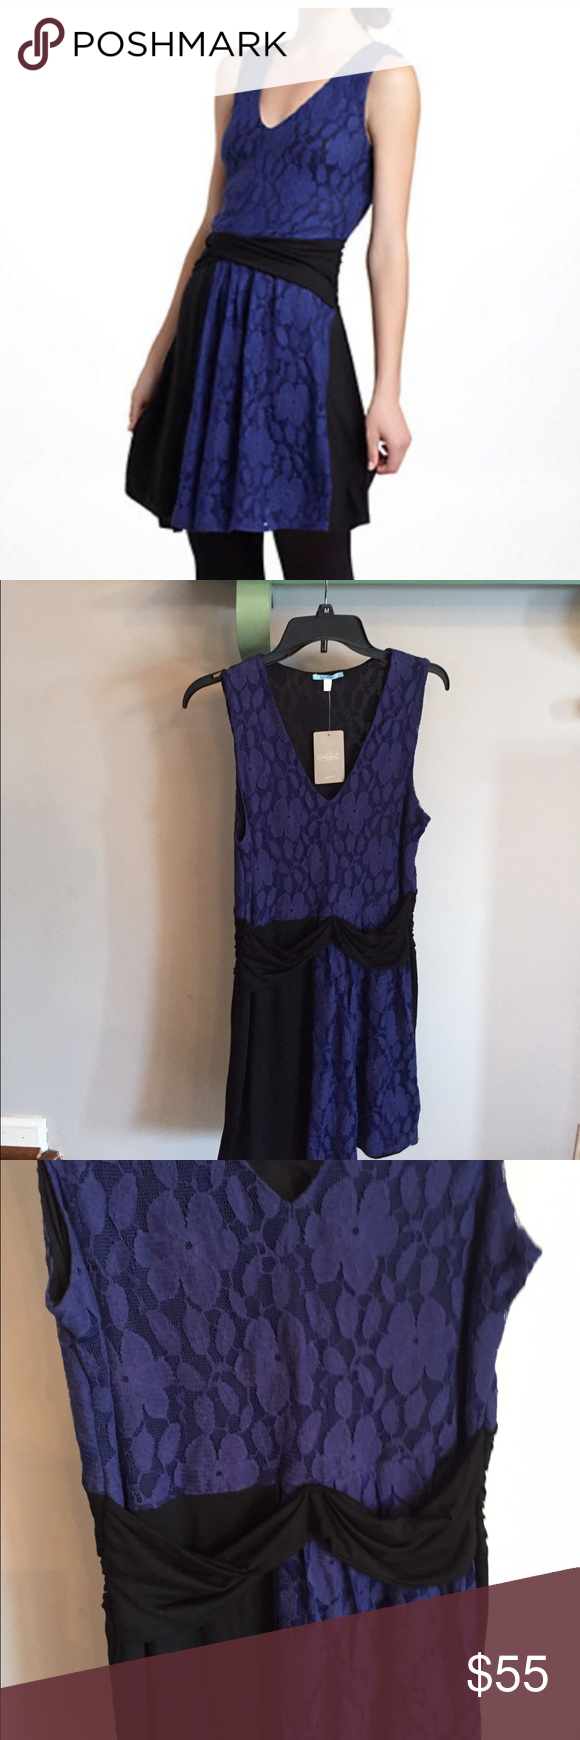 "•nwt• Leifnotes colorblock lace dress NWT lace colorblock dress. Royal blue lace against black jersey. Cross waist and drape front. Bust 17"". Stretchy waist 15.5"". Length 36"" Anthropologie Dresses"